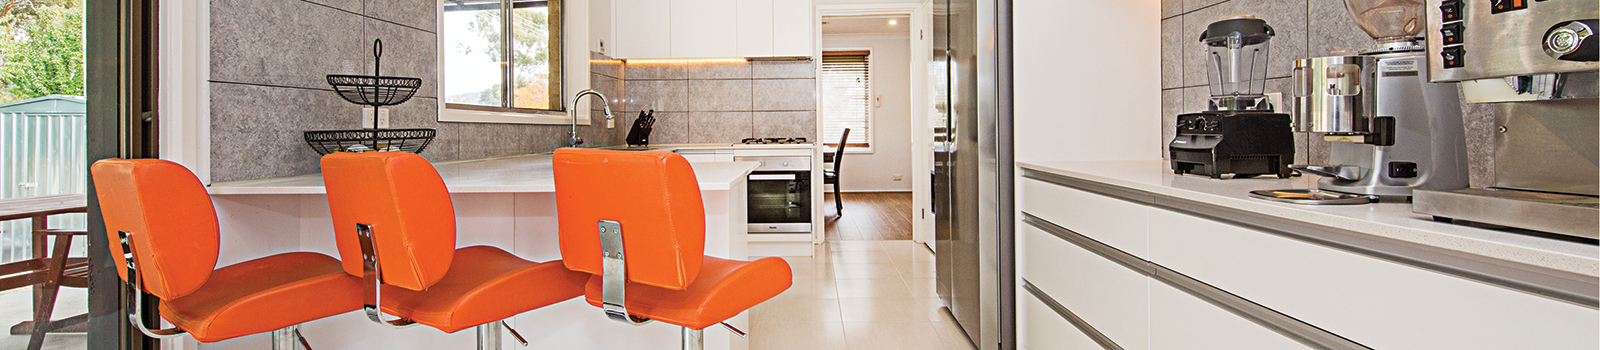 Modular kitchen with a breakfast counter.